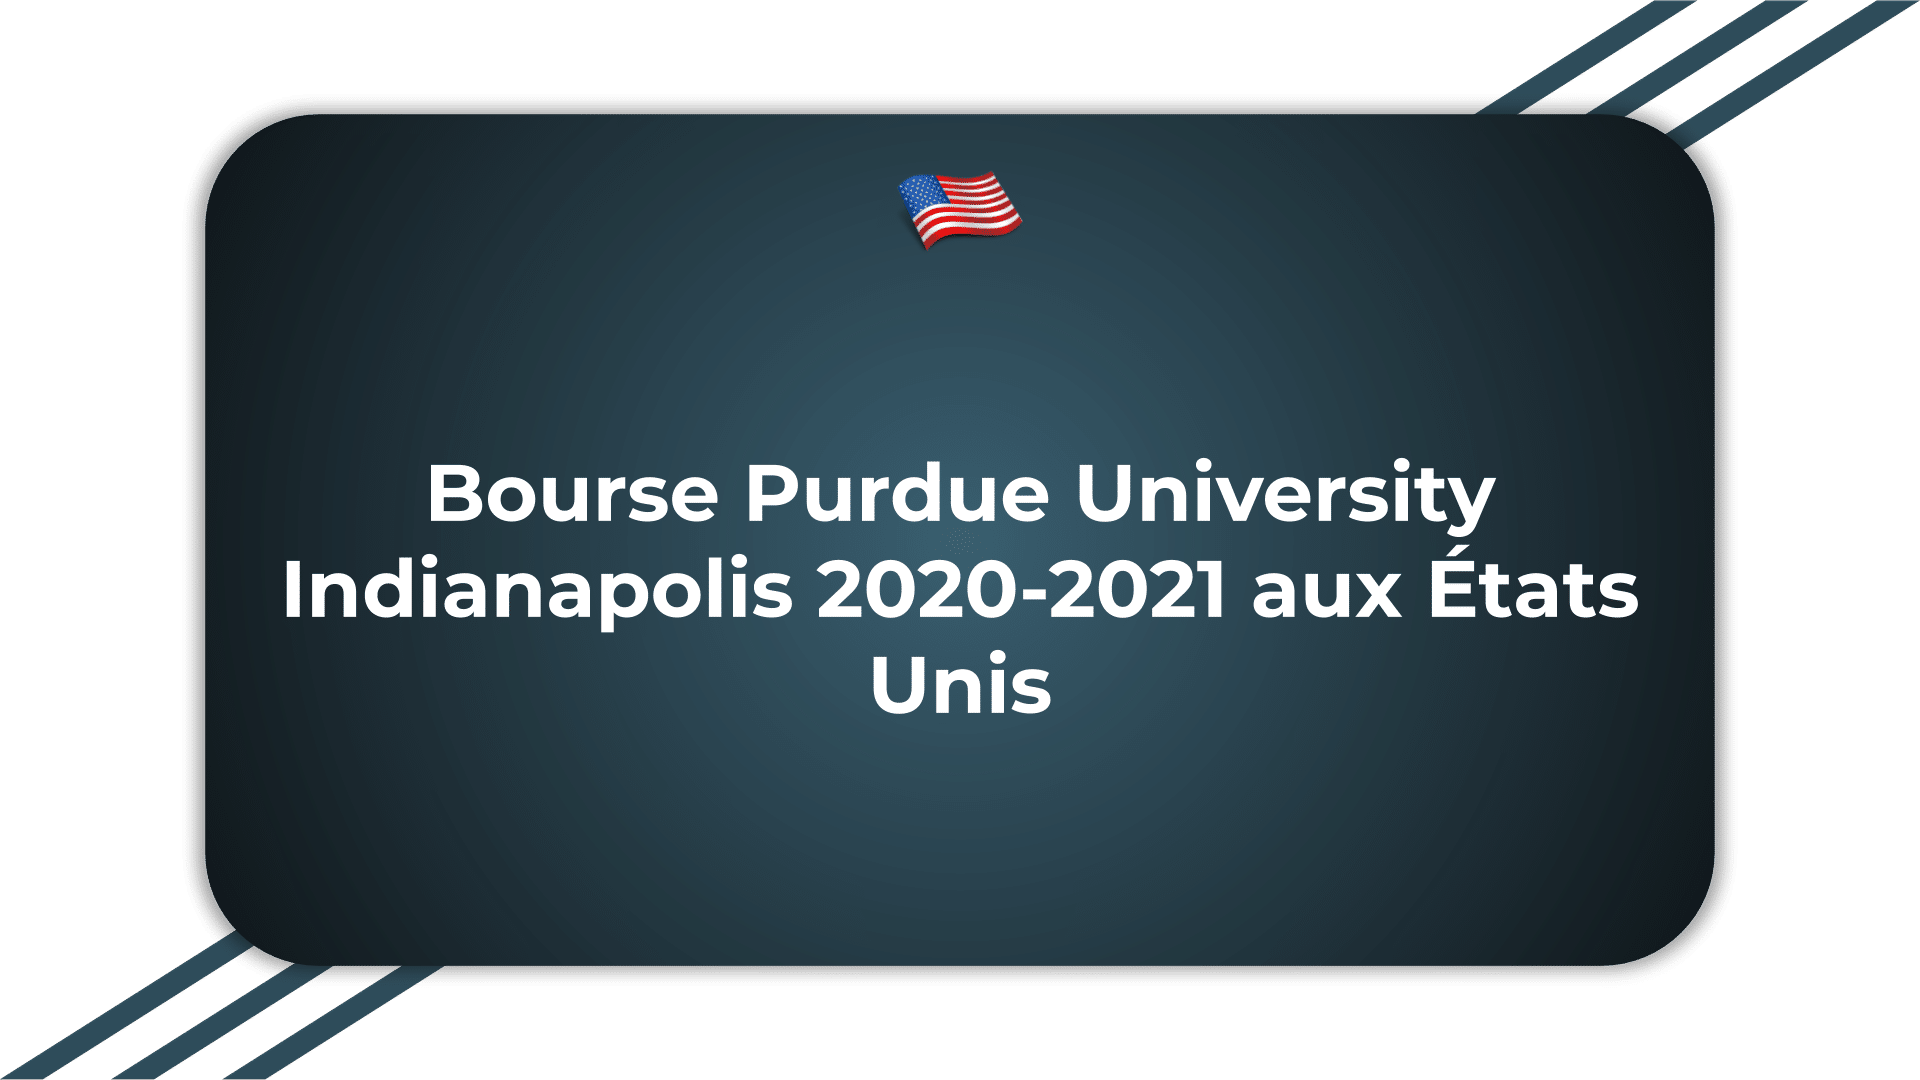 Bourse Purdue University Indianapolis